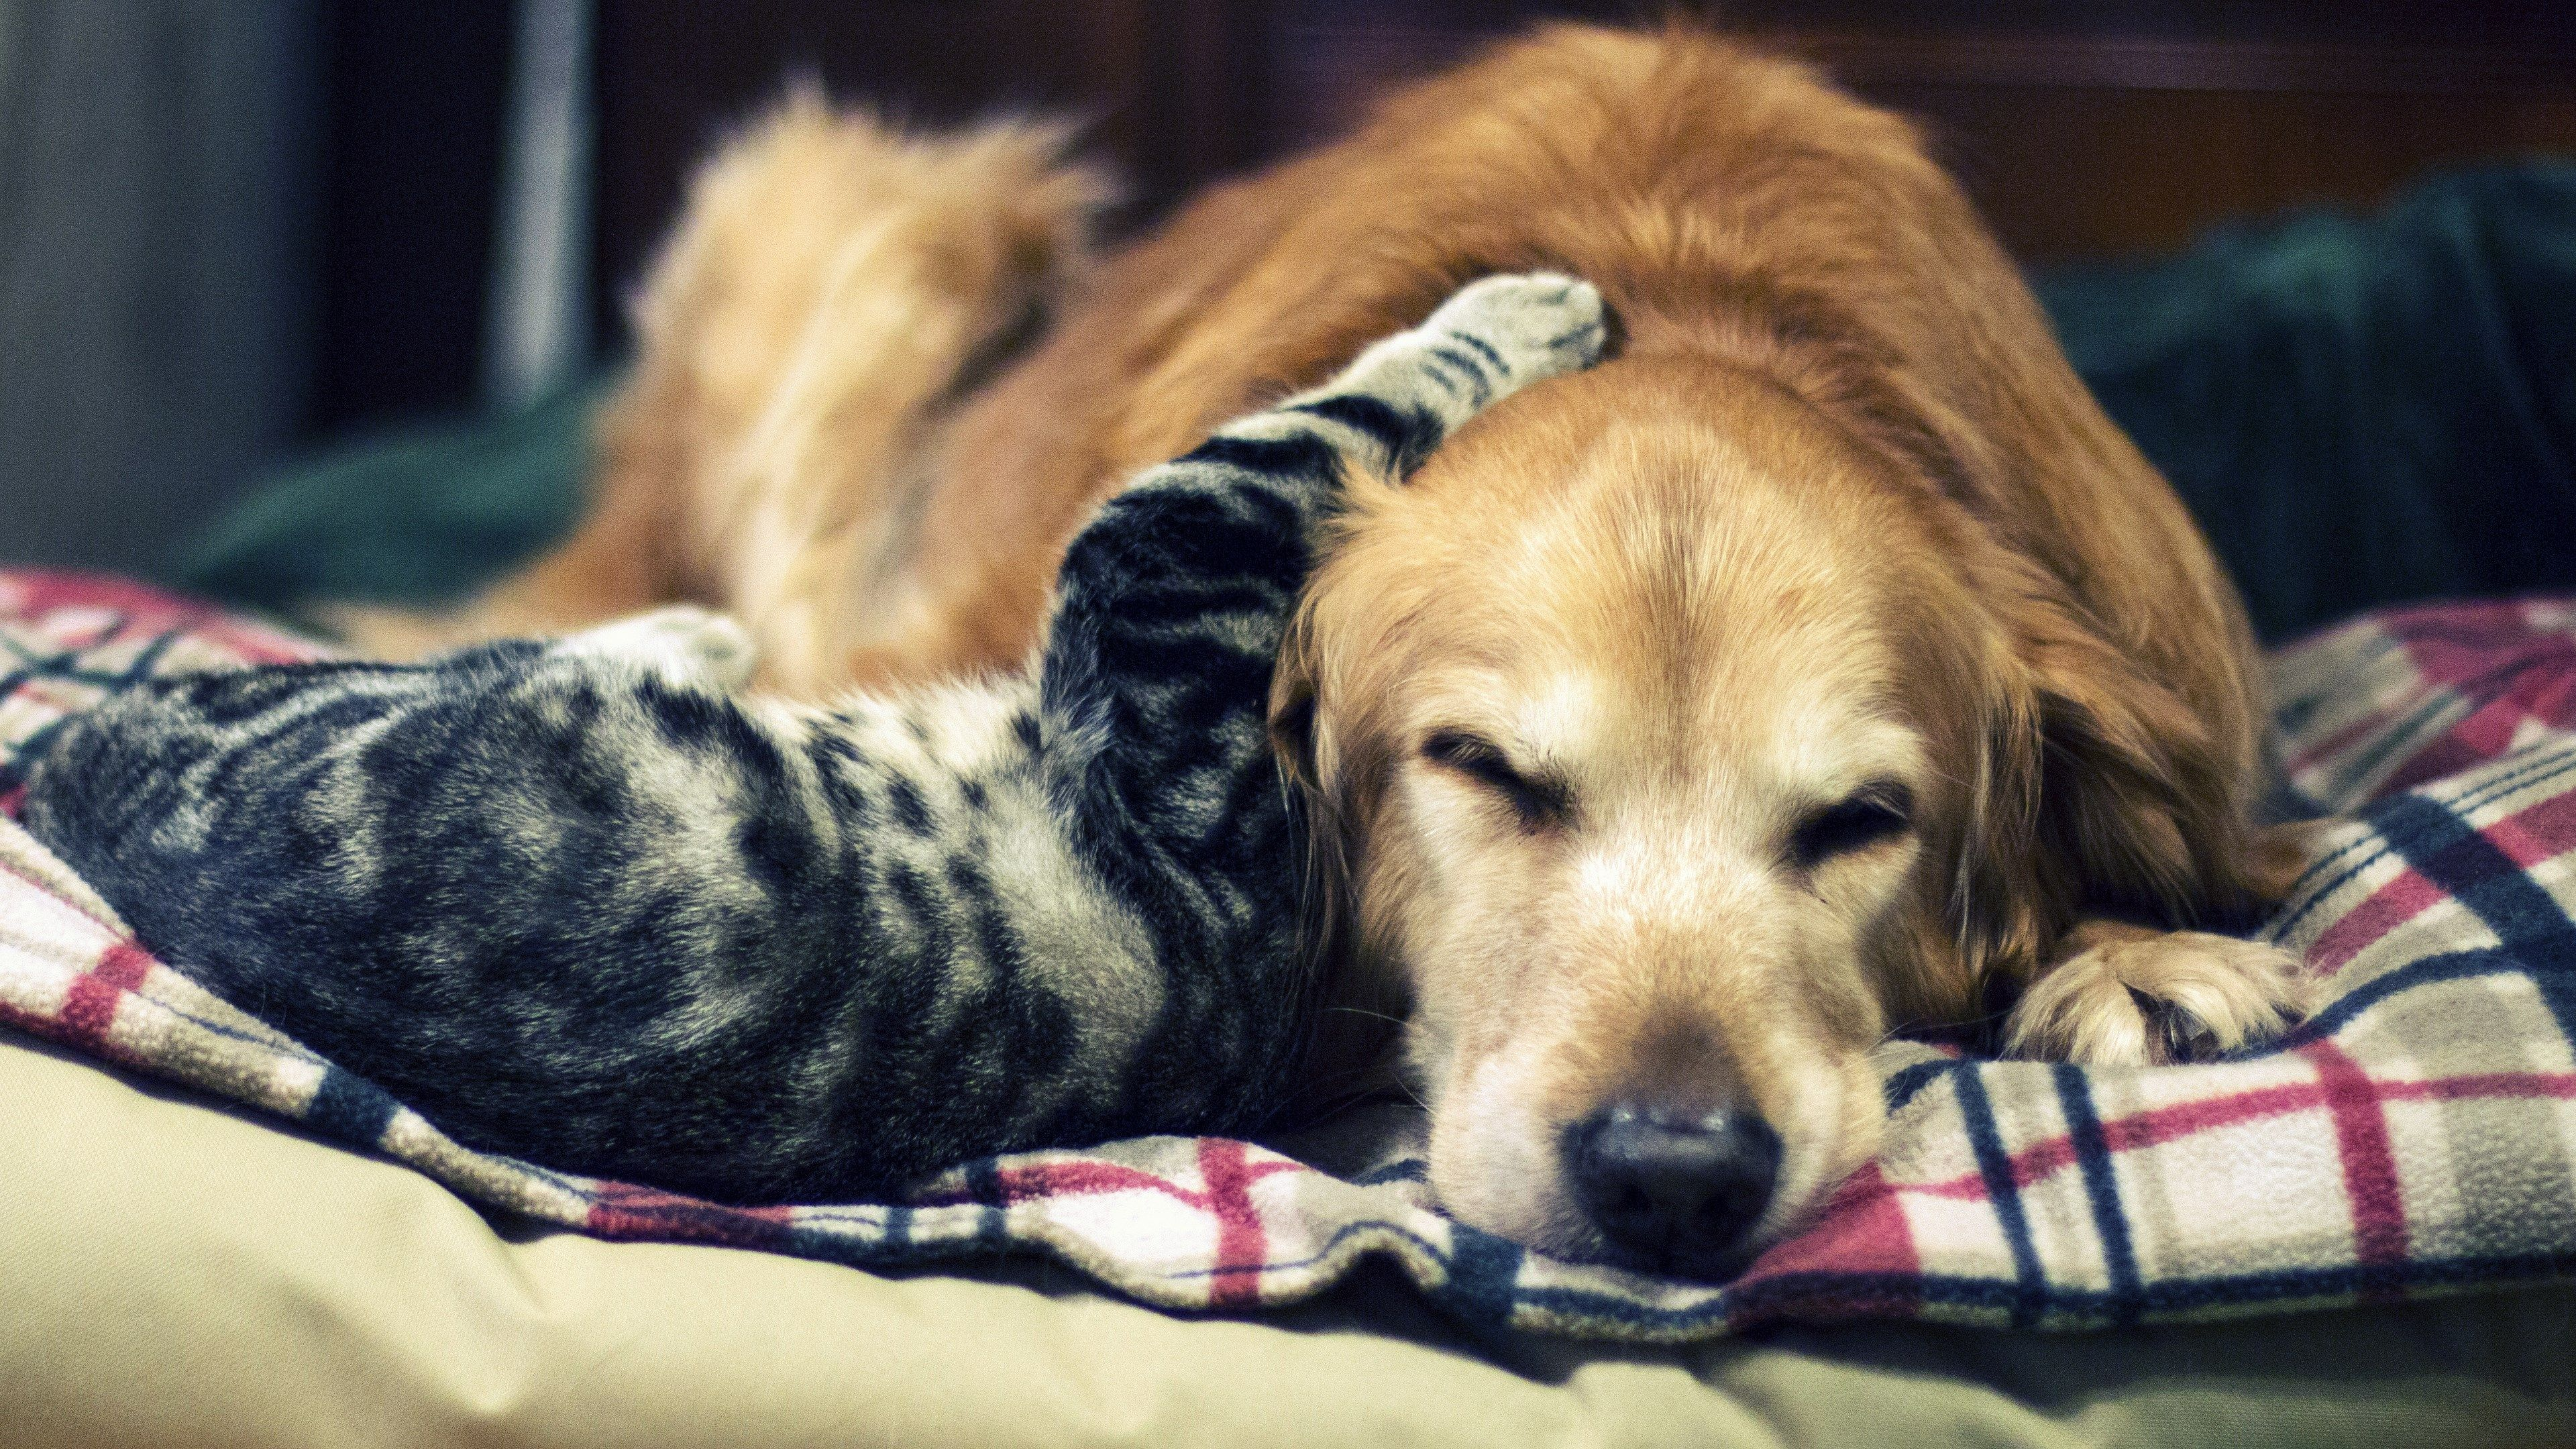 cute cat and dog 4k wallpaper for desktop | ololoshenka ...